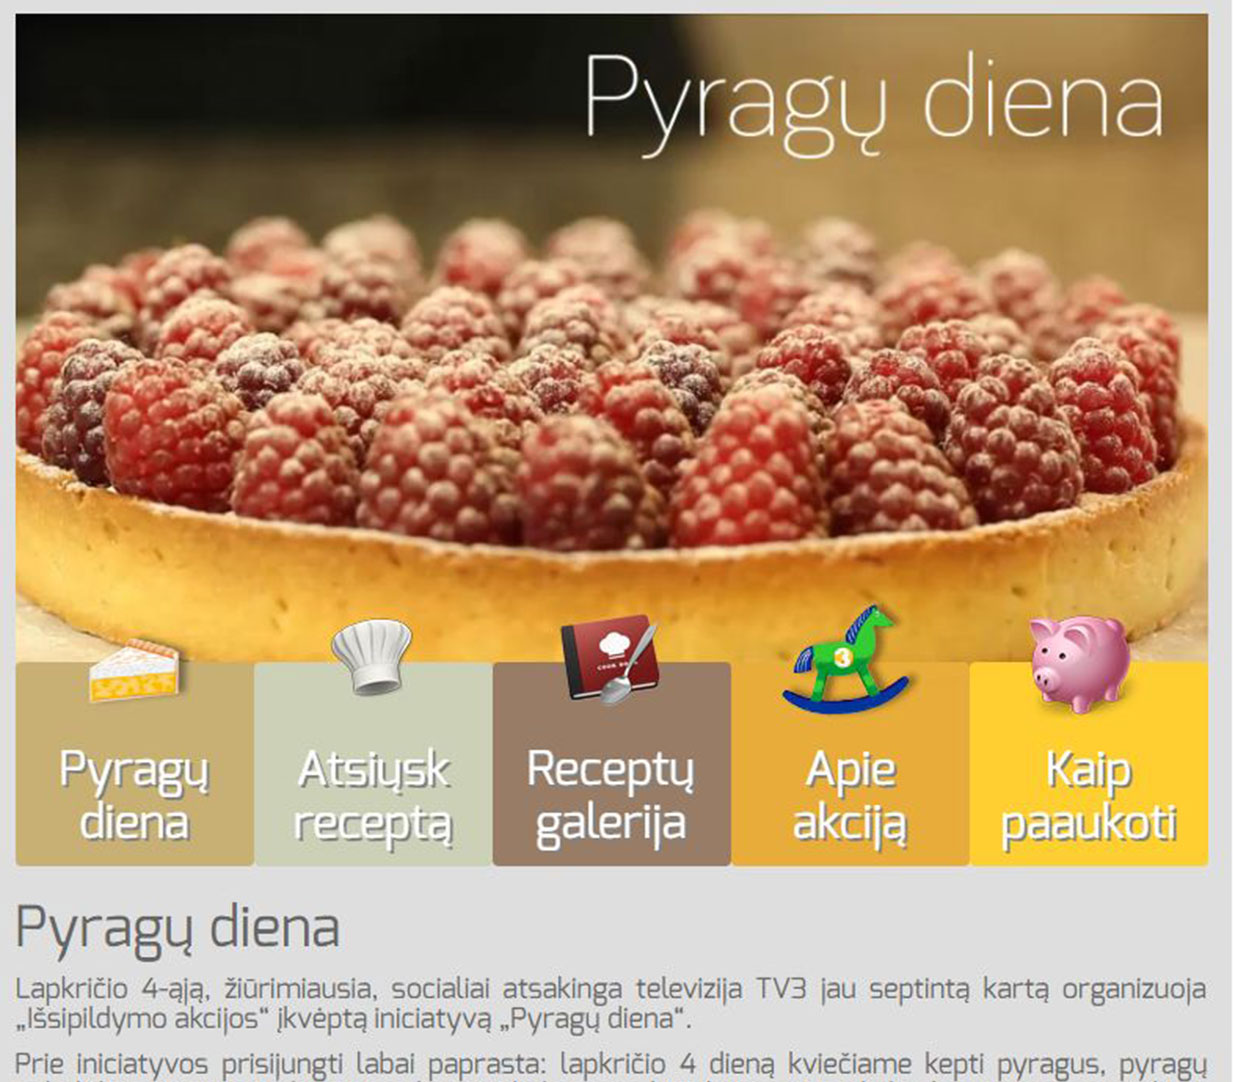 Pyragų diena - A cake day landing page for charity